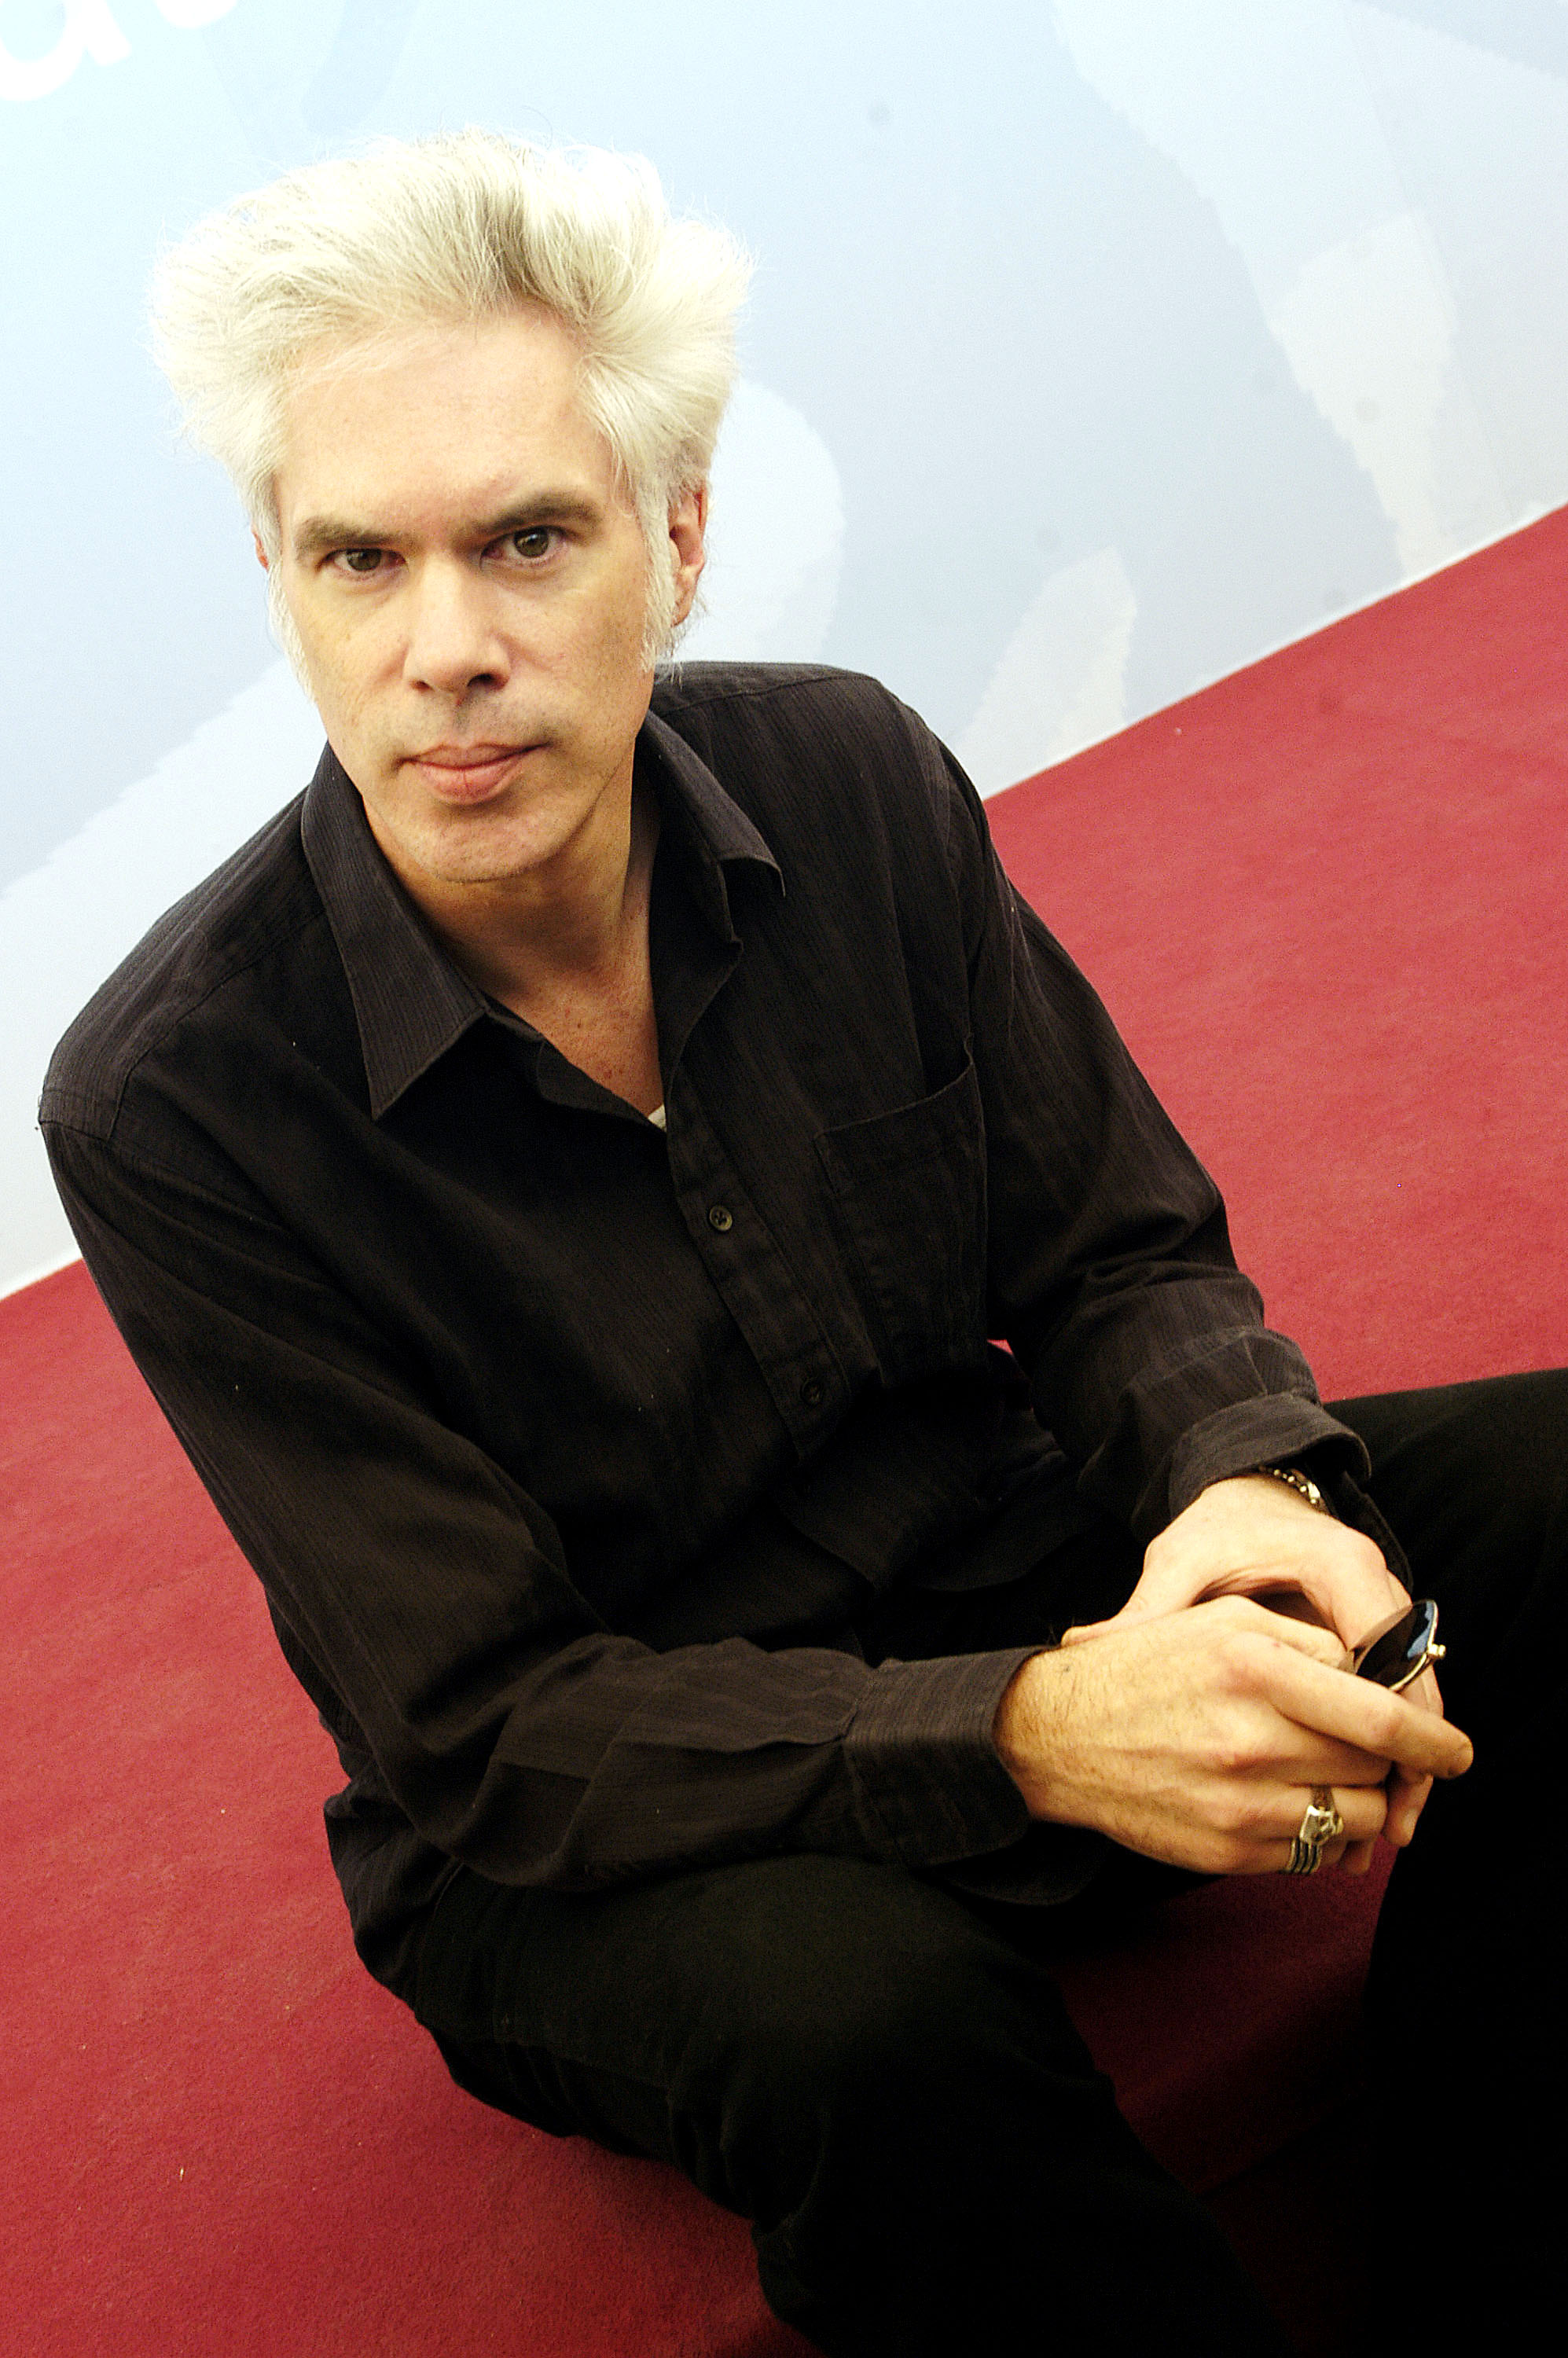 VENICE, ITALY - SEPTEMBER 5: American Director Jim Jarmusch poses during a photocall at the 60th Venice Film Festival September 5, 2003 in Venice, Italy. Jarmusch is presenting his new film